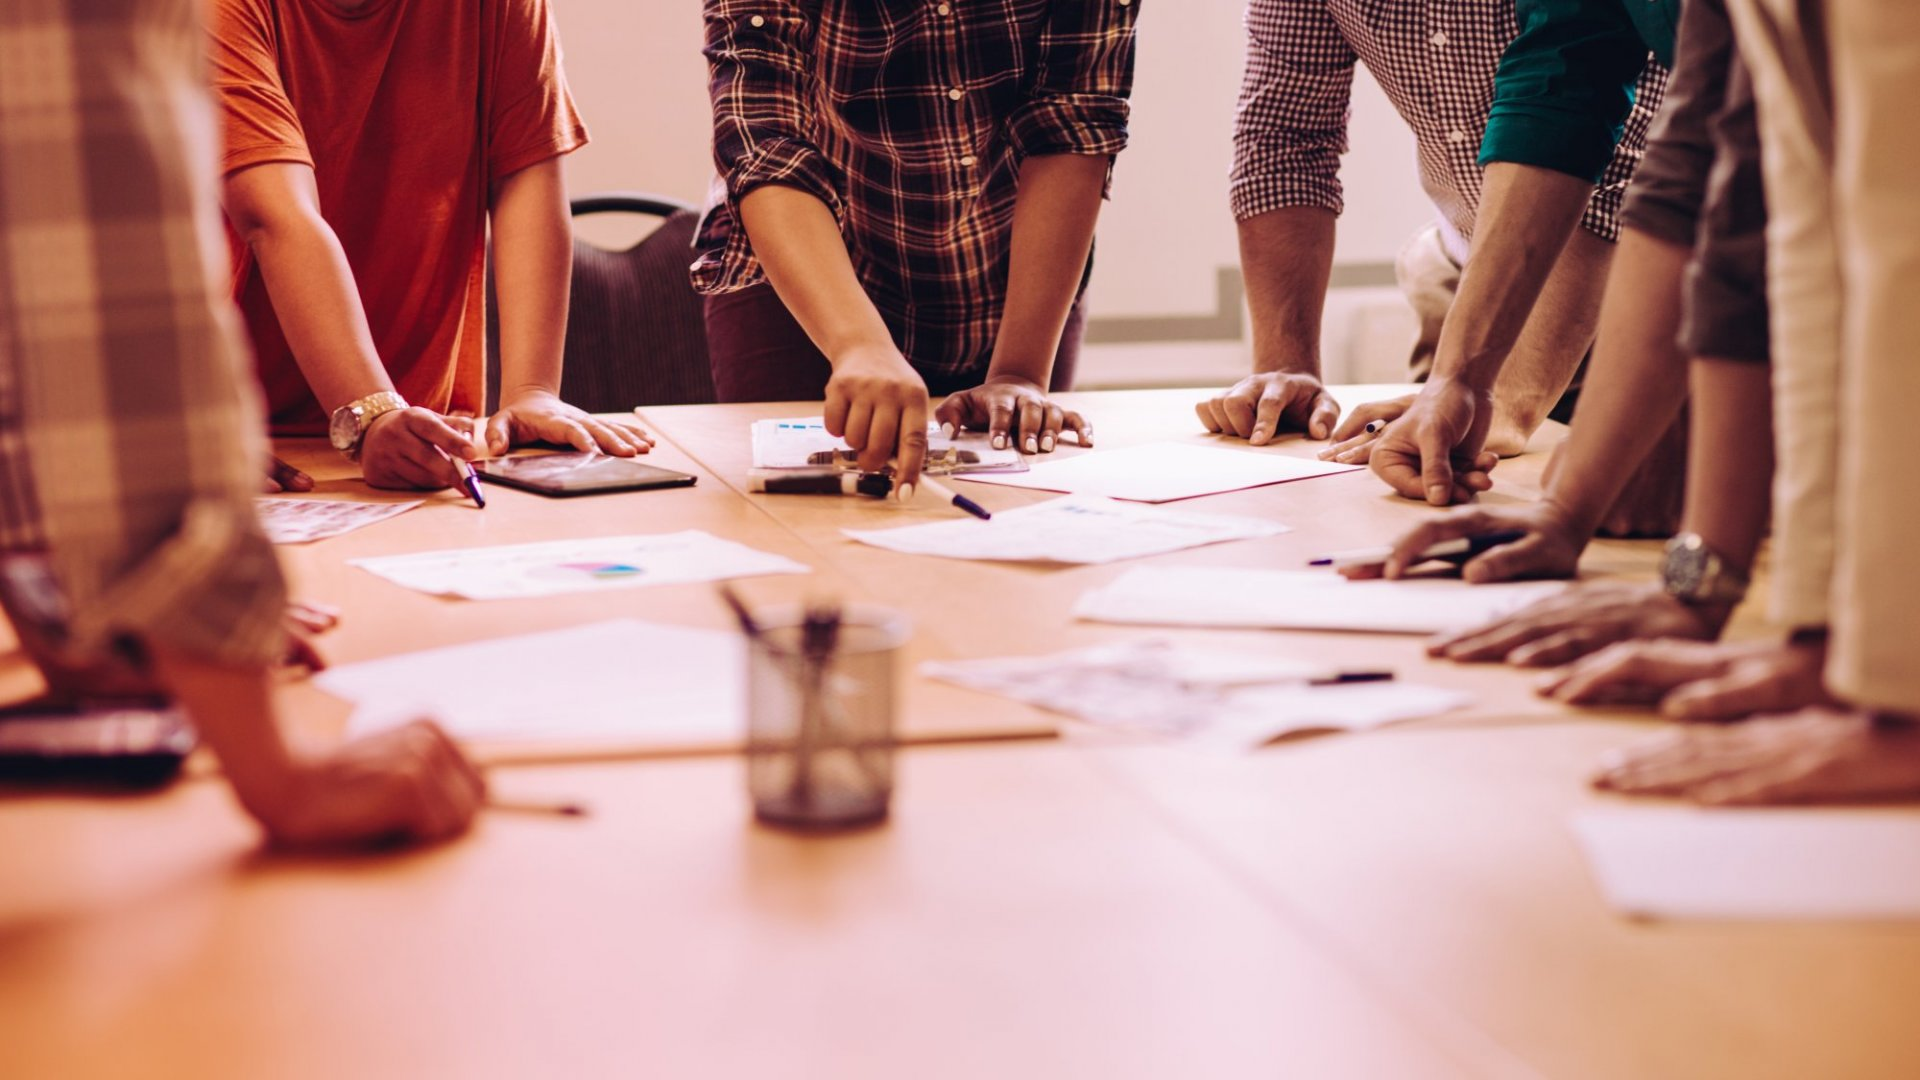 3 Ways to Hire the Perfect People for Your Team